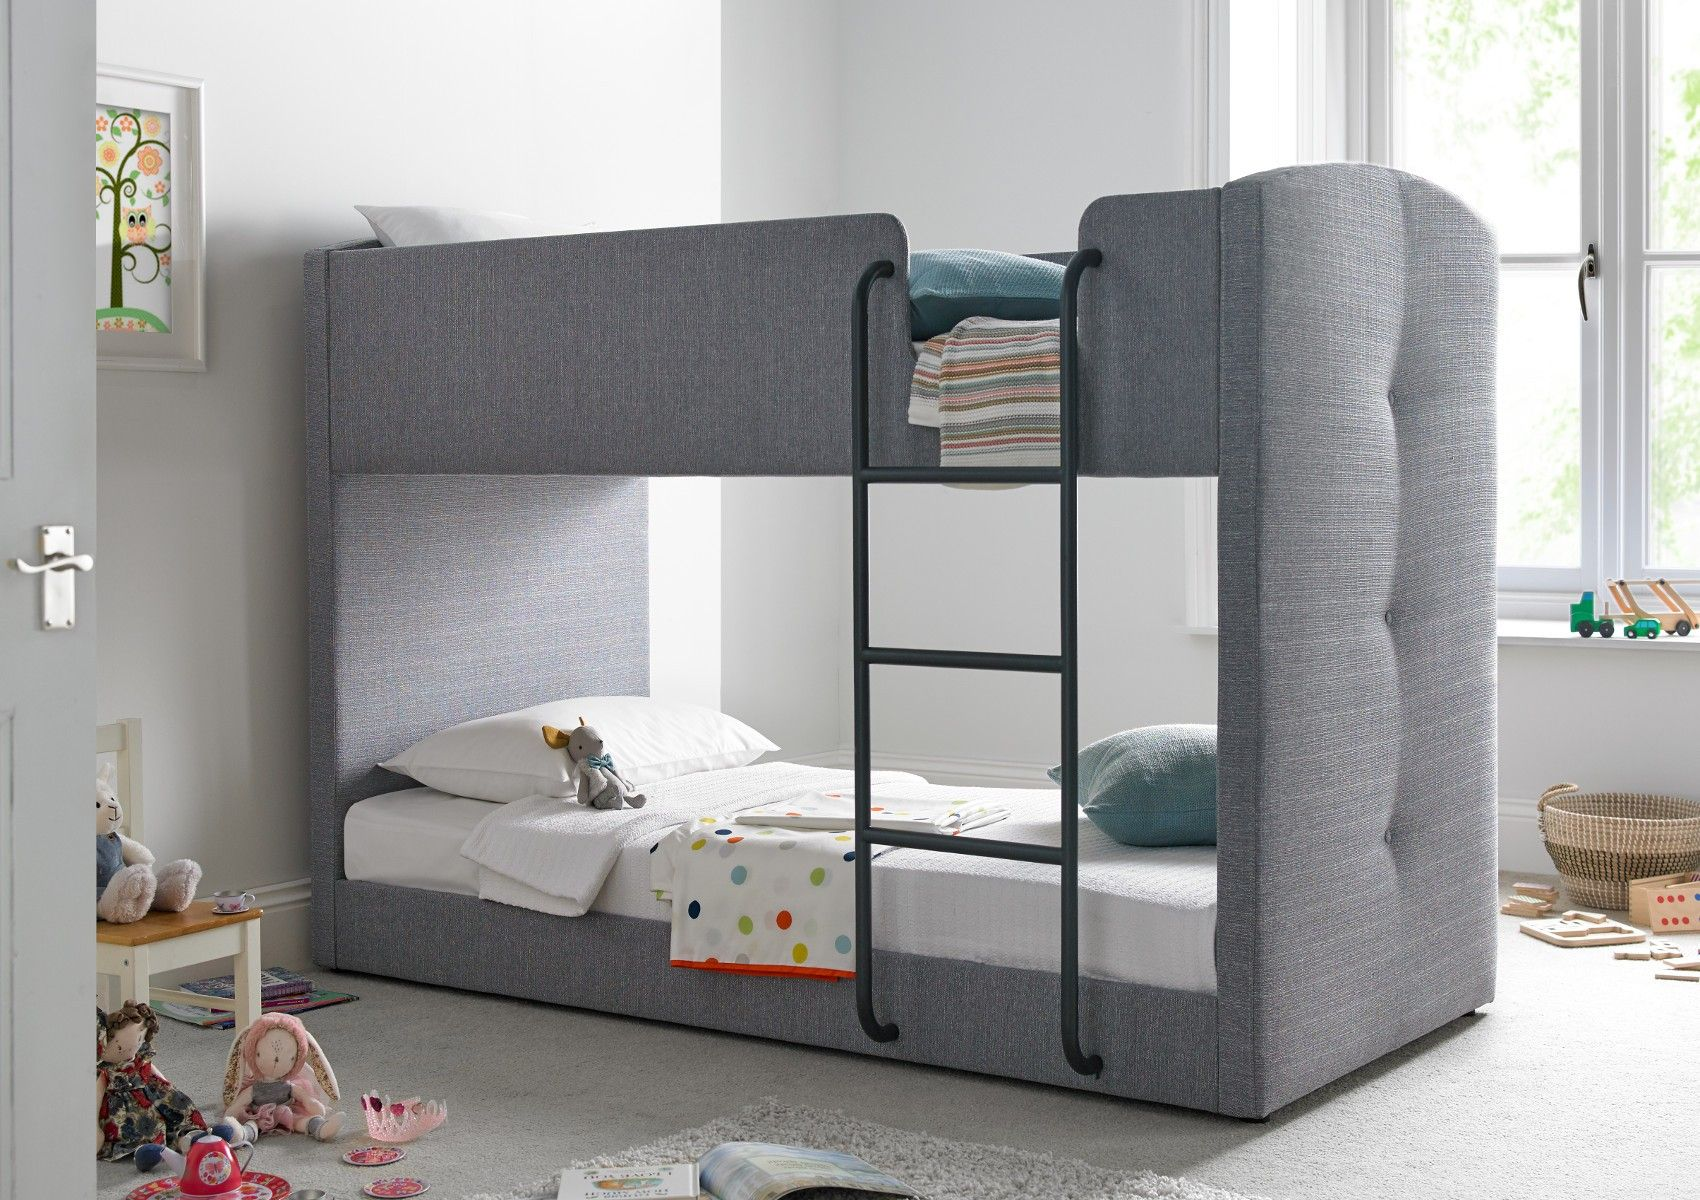 Exclusively Designed For Time 4 Sleep The Kaydian Bunk Bed Is